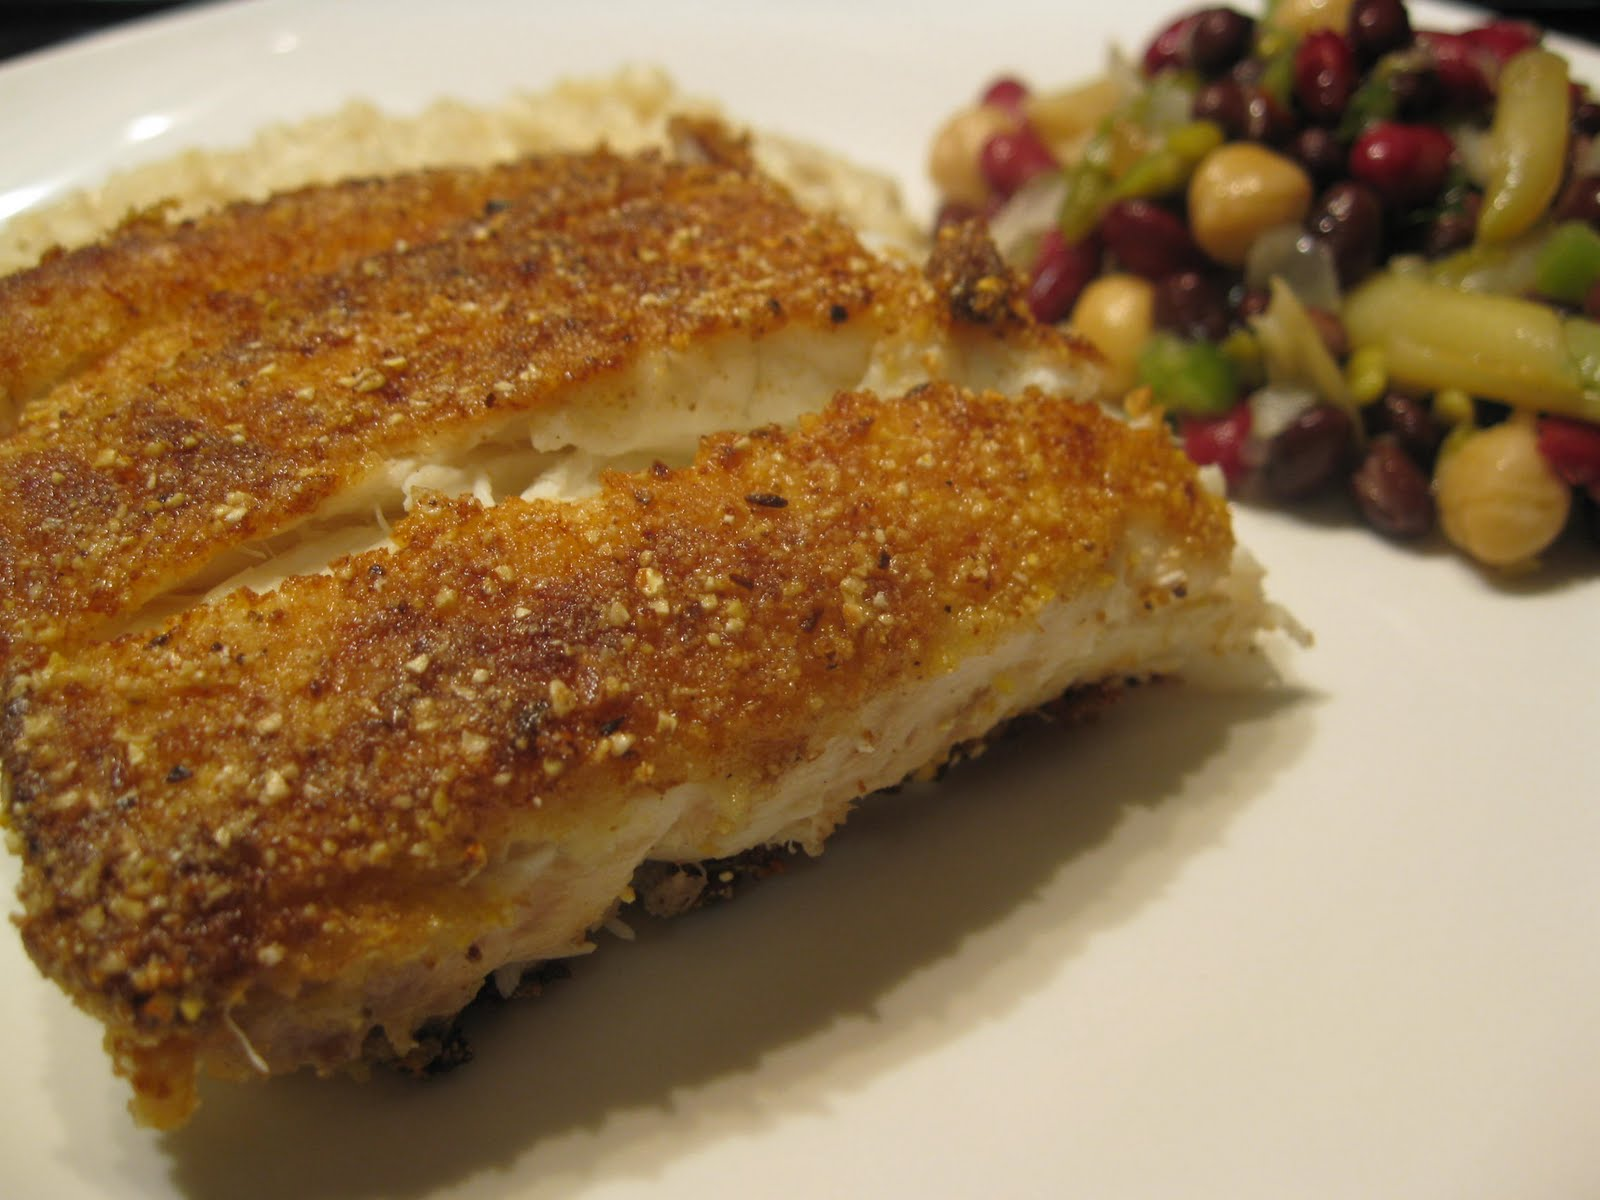 Fatback And Foie Gras: Golden Cornmeal-Crusted Quick-Fry